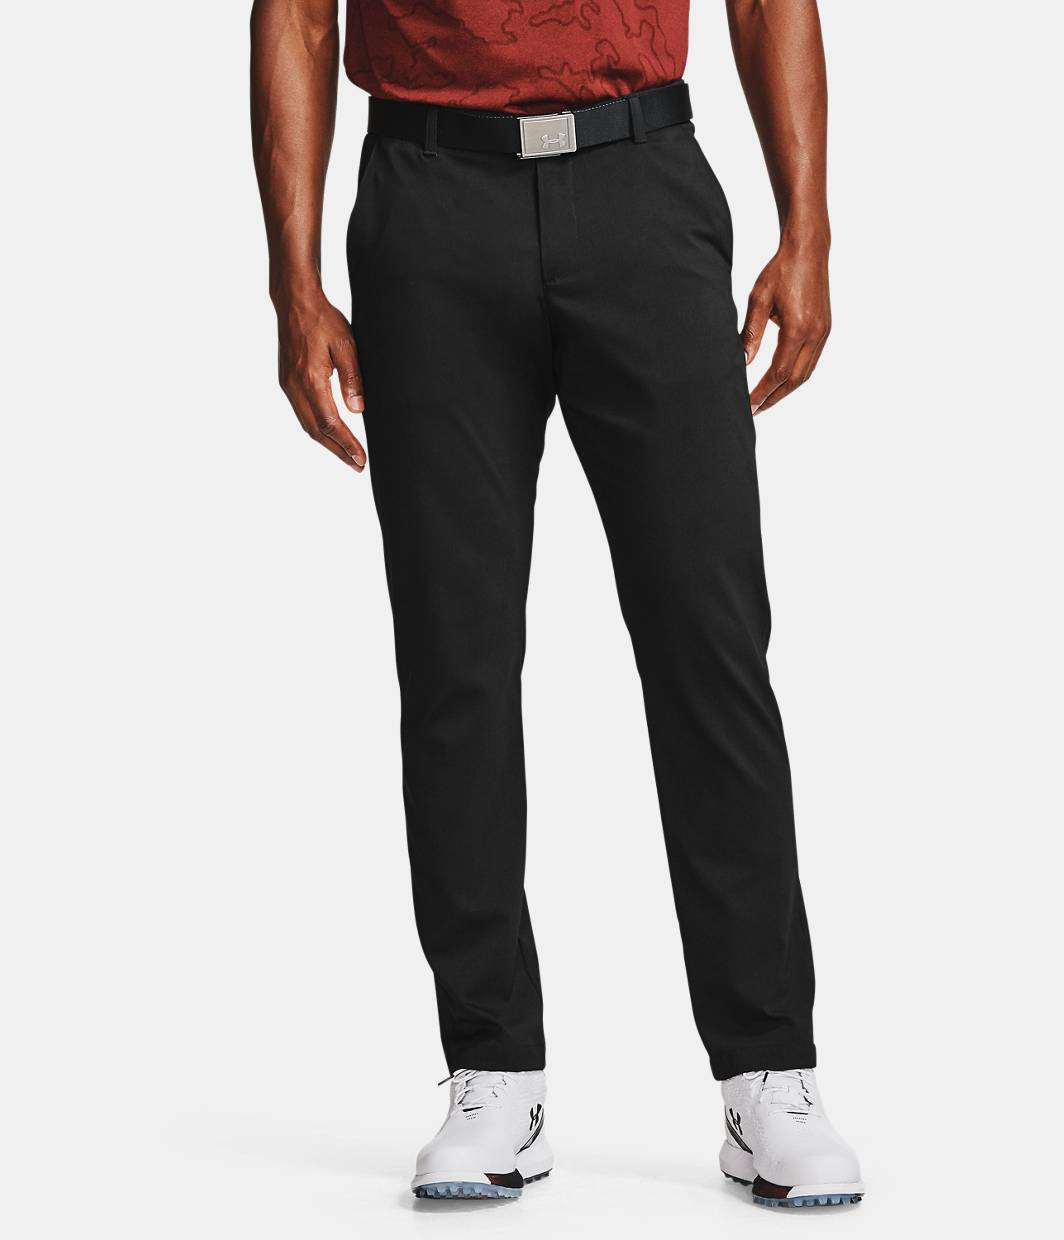 206a8080b9 Men's Golf Bottoms | Under Armour US